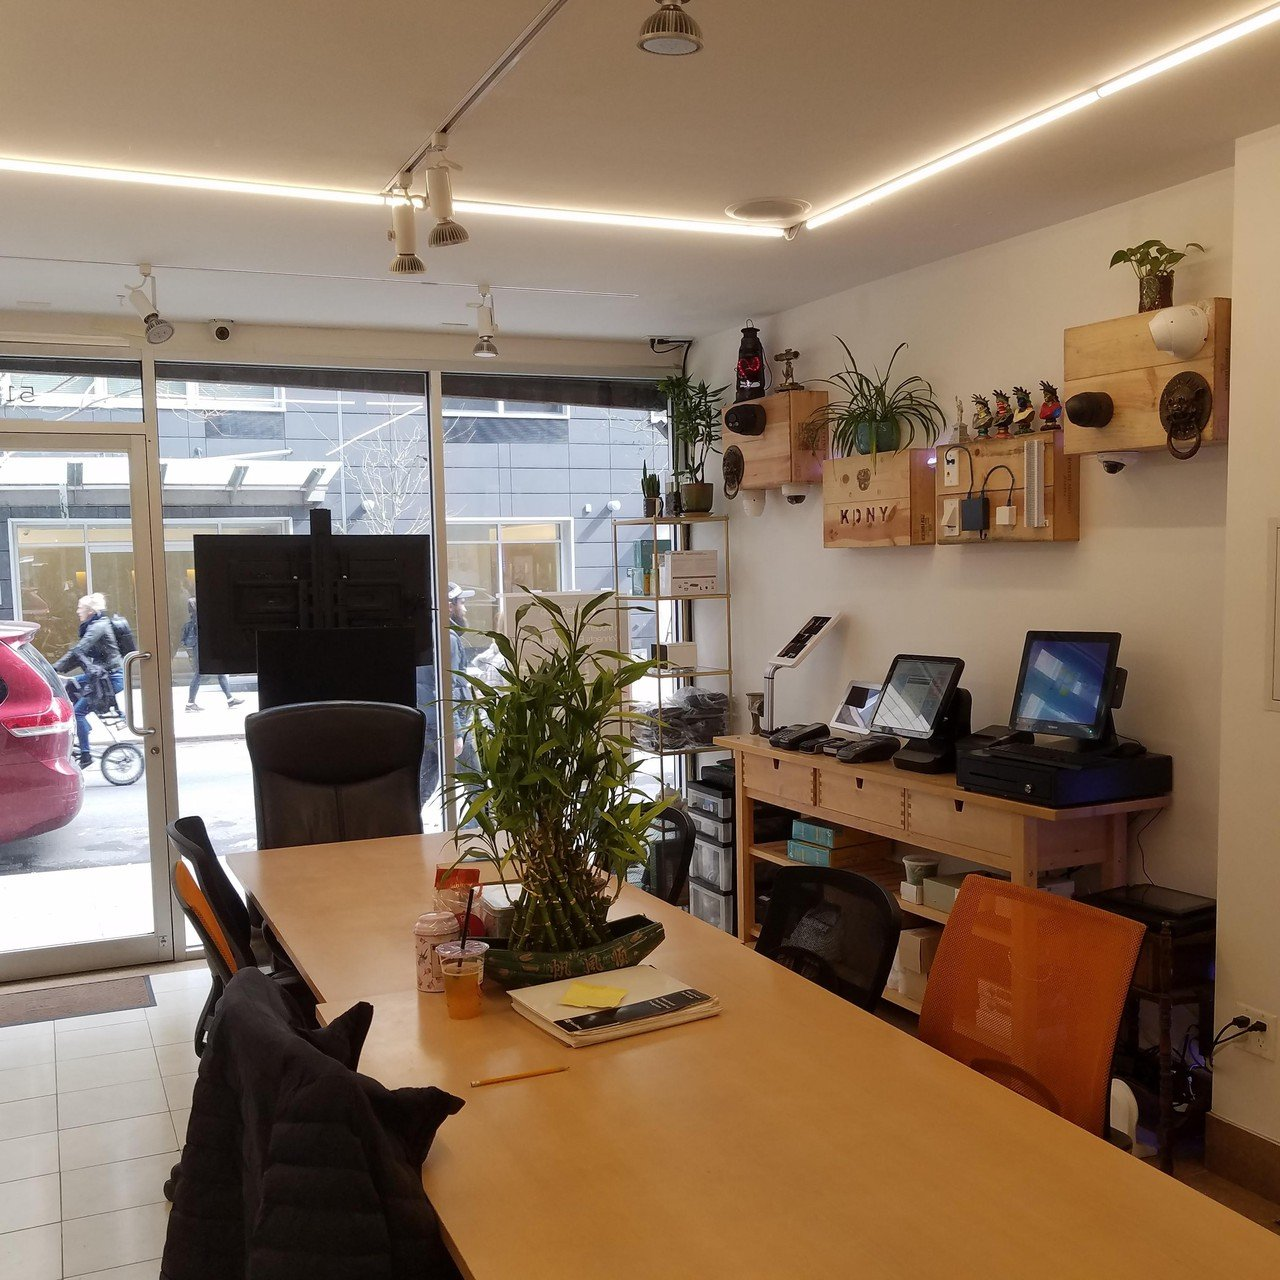 NYC  Coworking Space KDNY POS image 1